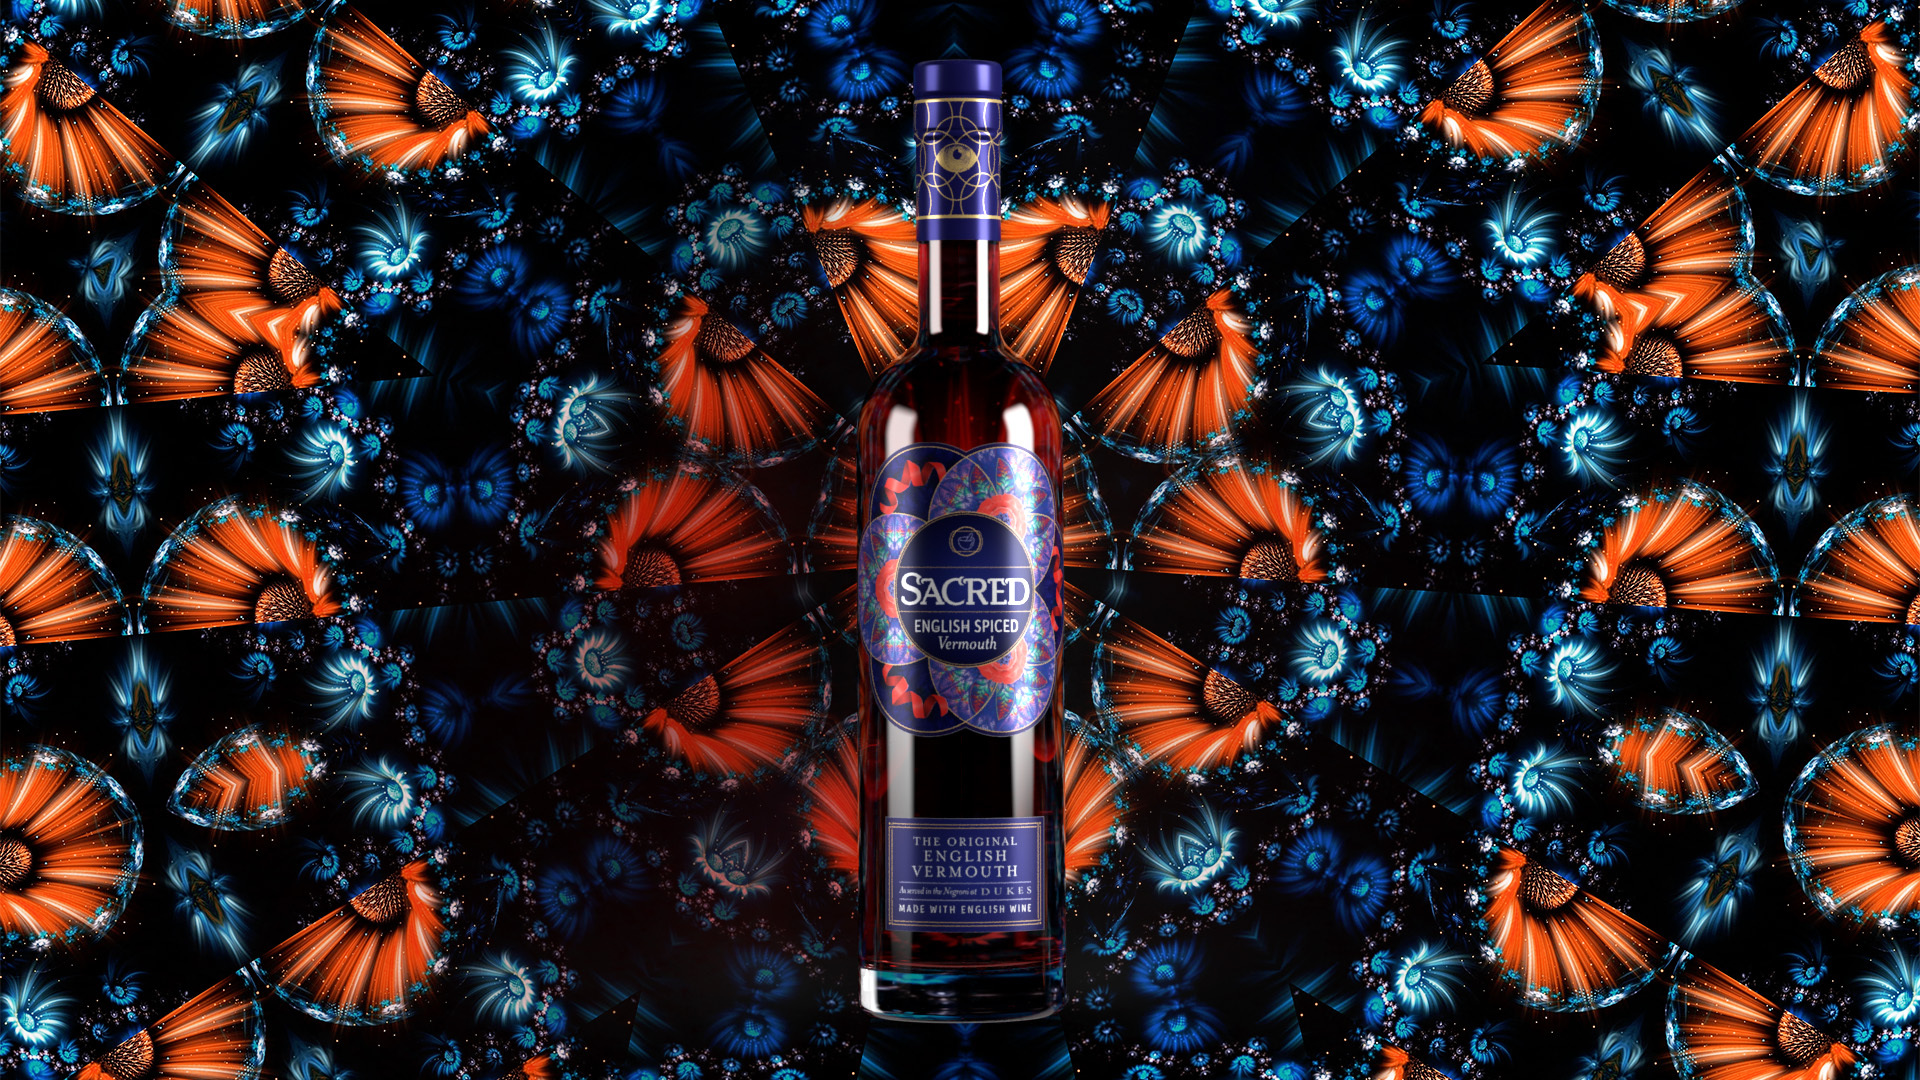 Hart & Jones Create Iconic Designs For Award-Winning Vermouths